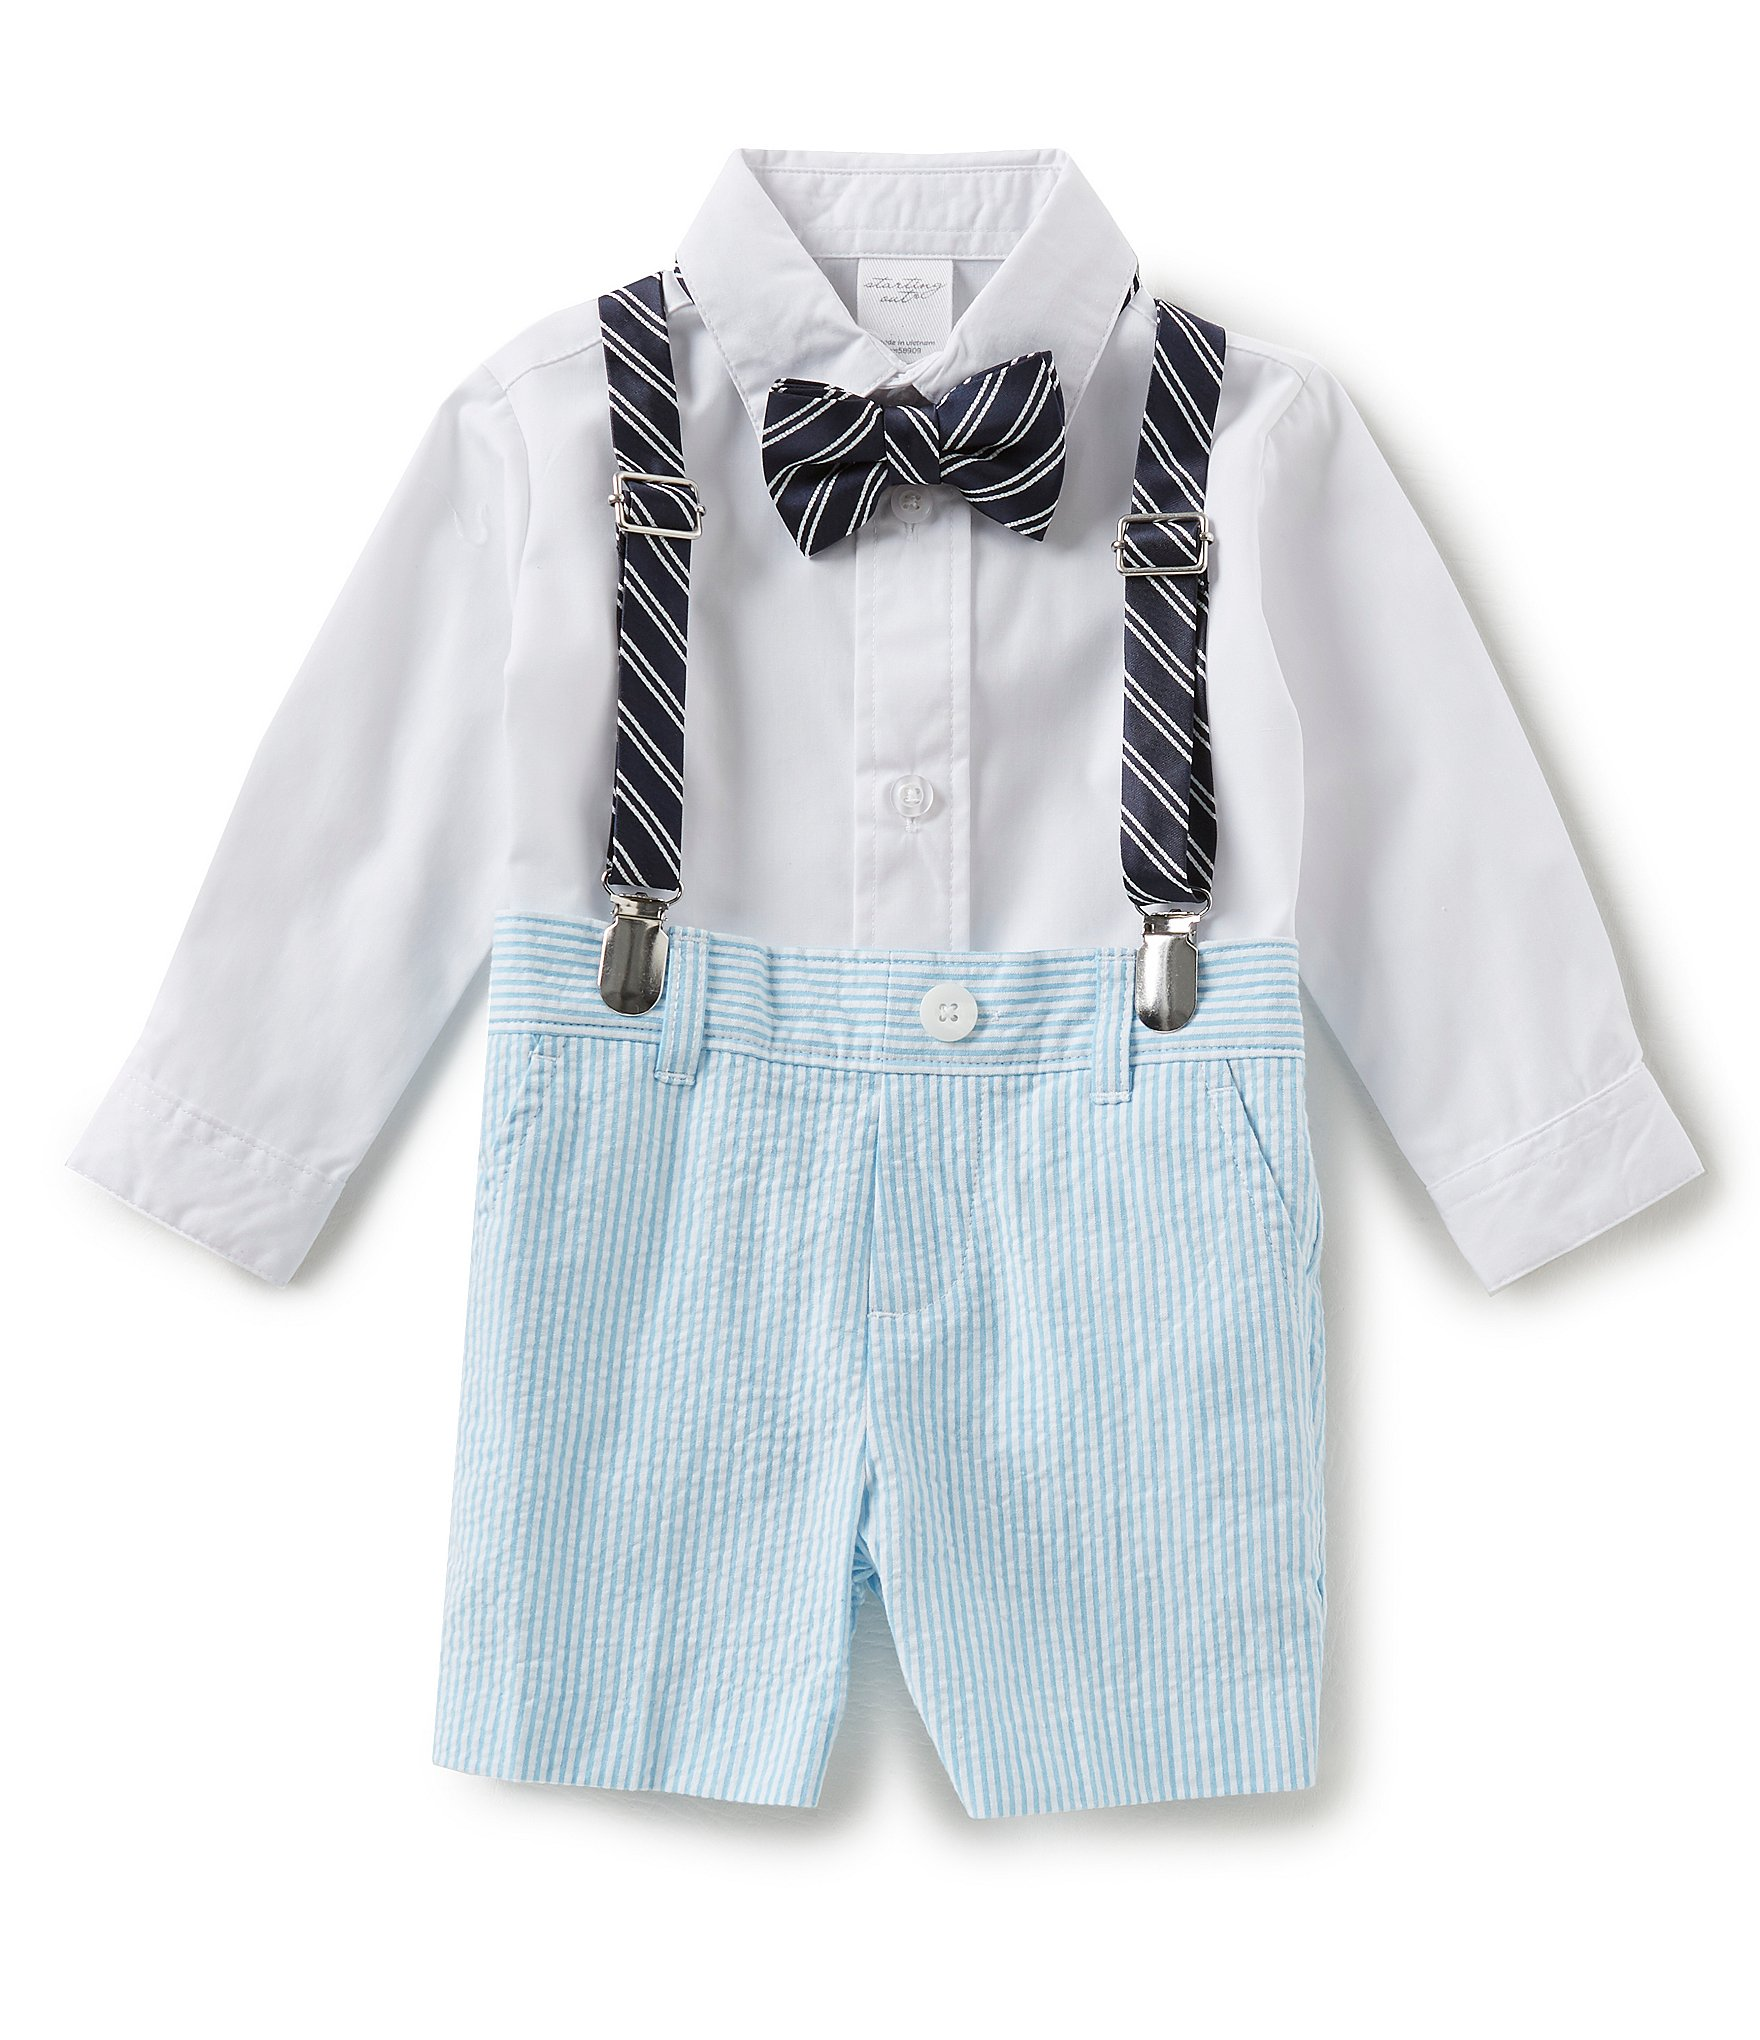 Baby Boy Dress Shirts & Pants | Dillards